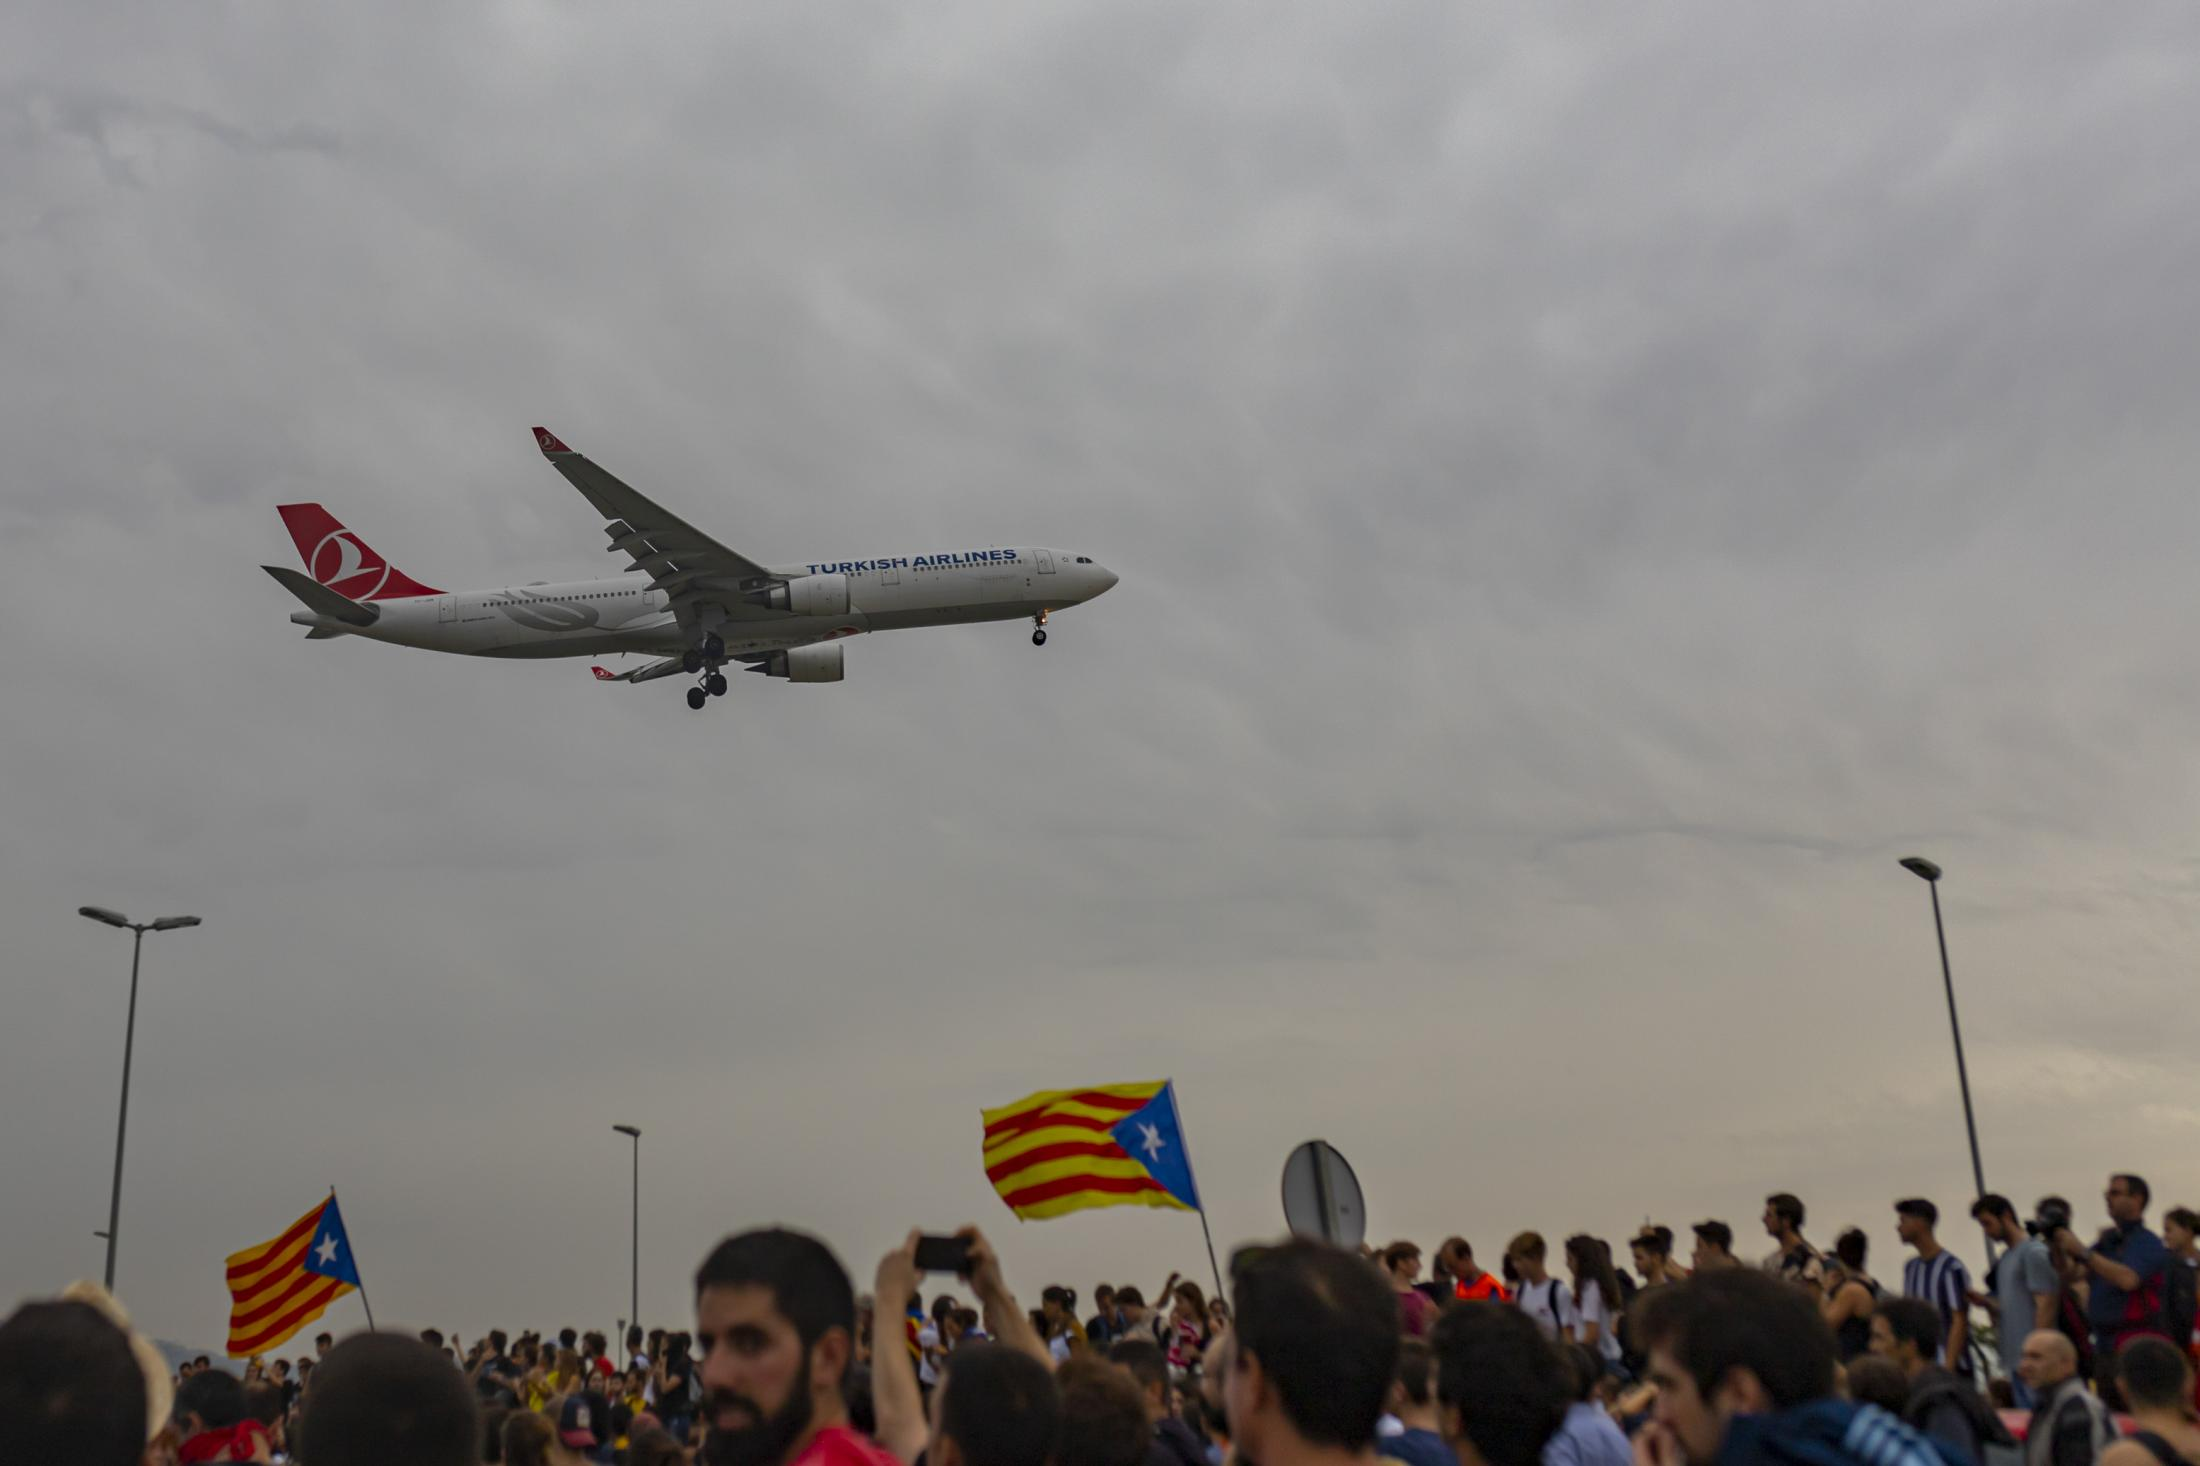 Tsunami Democratic collapses Barcelona. Catalan separatist leaders given lengthy prison sentences. The demonstrations in El Prat airport were organized by Tsunami Democratic, an organization that claims to be an independent grassroots movement, without any political back-up. Thousands of people responded, heading to the airport by cars, trains, metro and even on foot. More than 100 flights were canceled, and several others were delayed as activists clashed with police. October 2019, Barcelona, Spain.